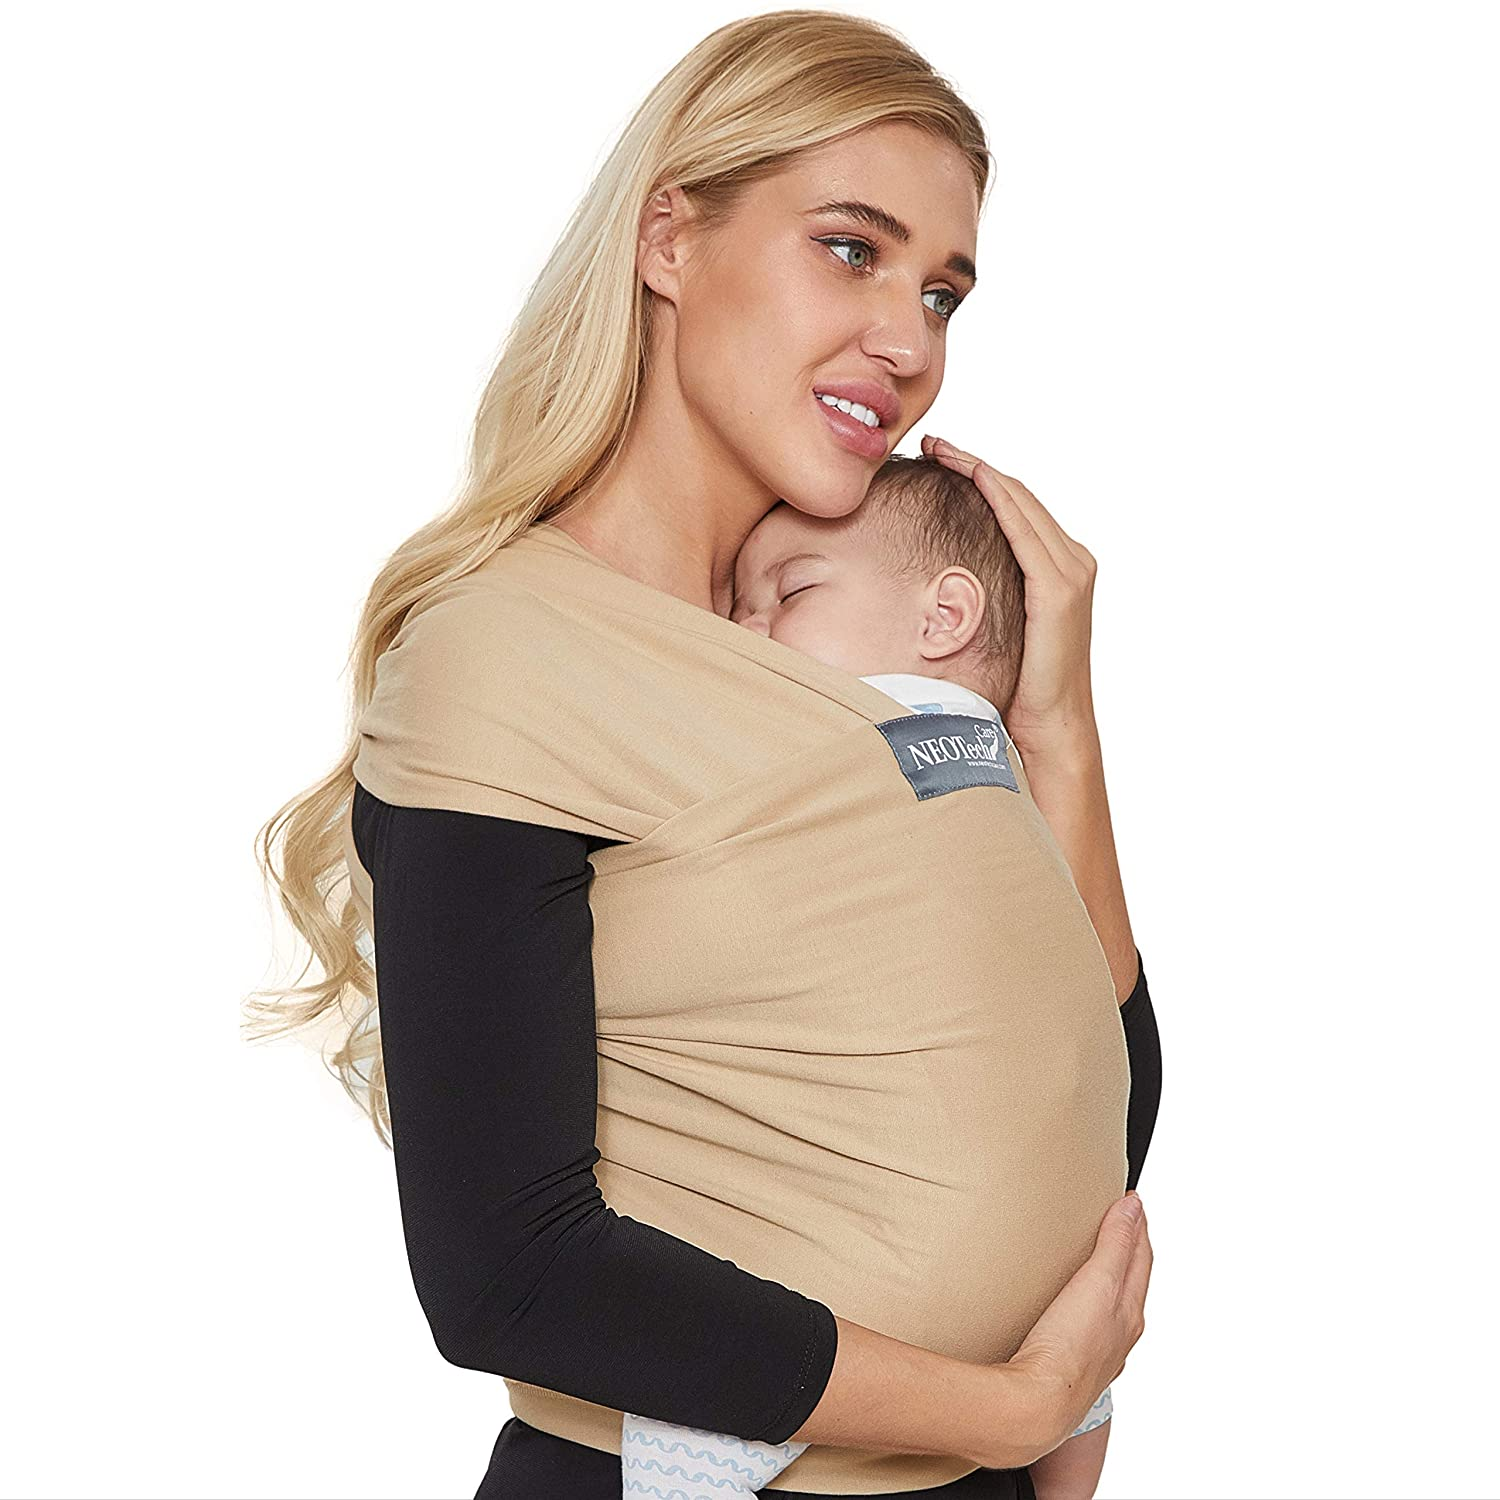 Toddler Child Neotech Care Baby Wrap Carrier Newborn for Infant Breathable /& Adjustable Cotton Grey